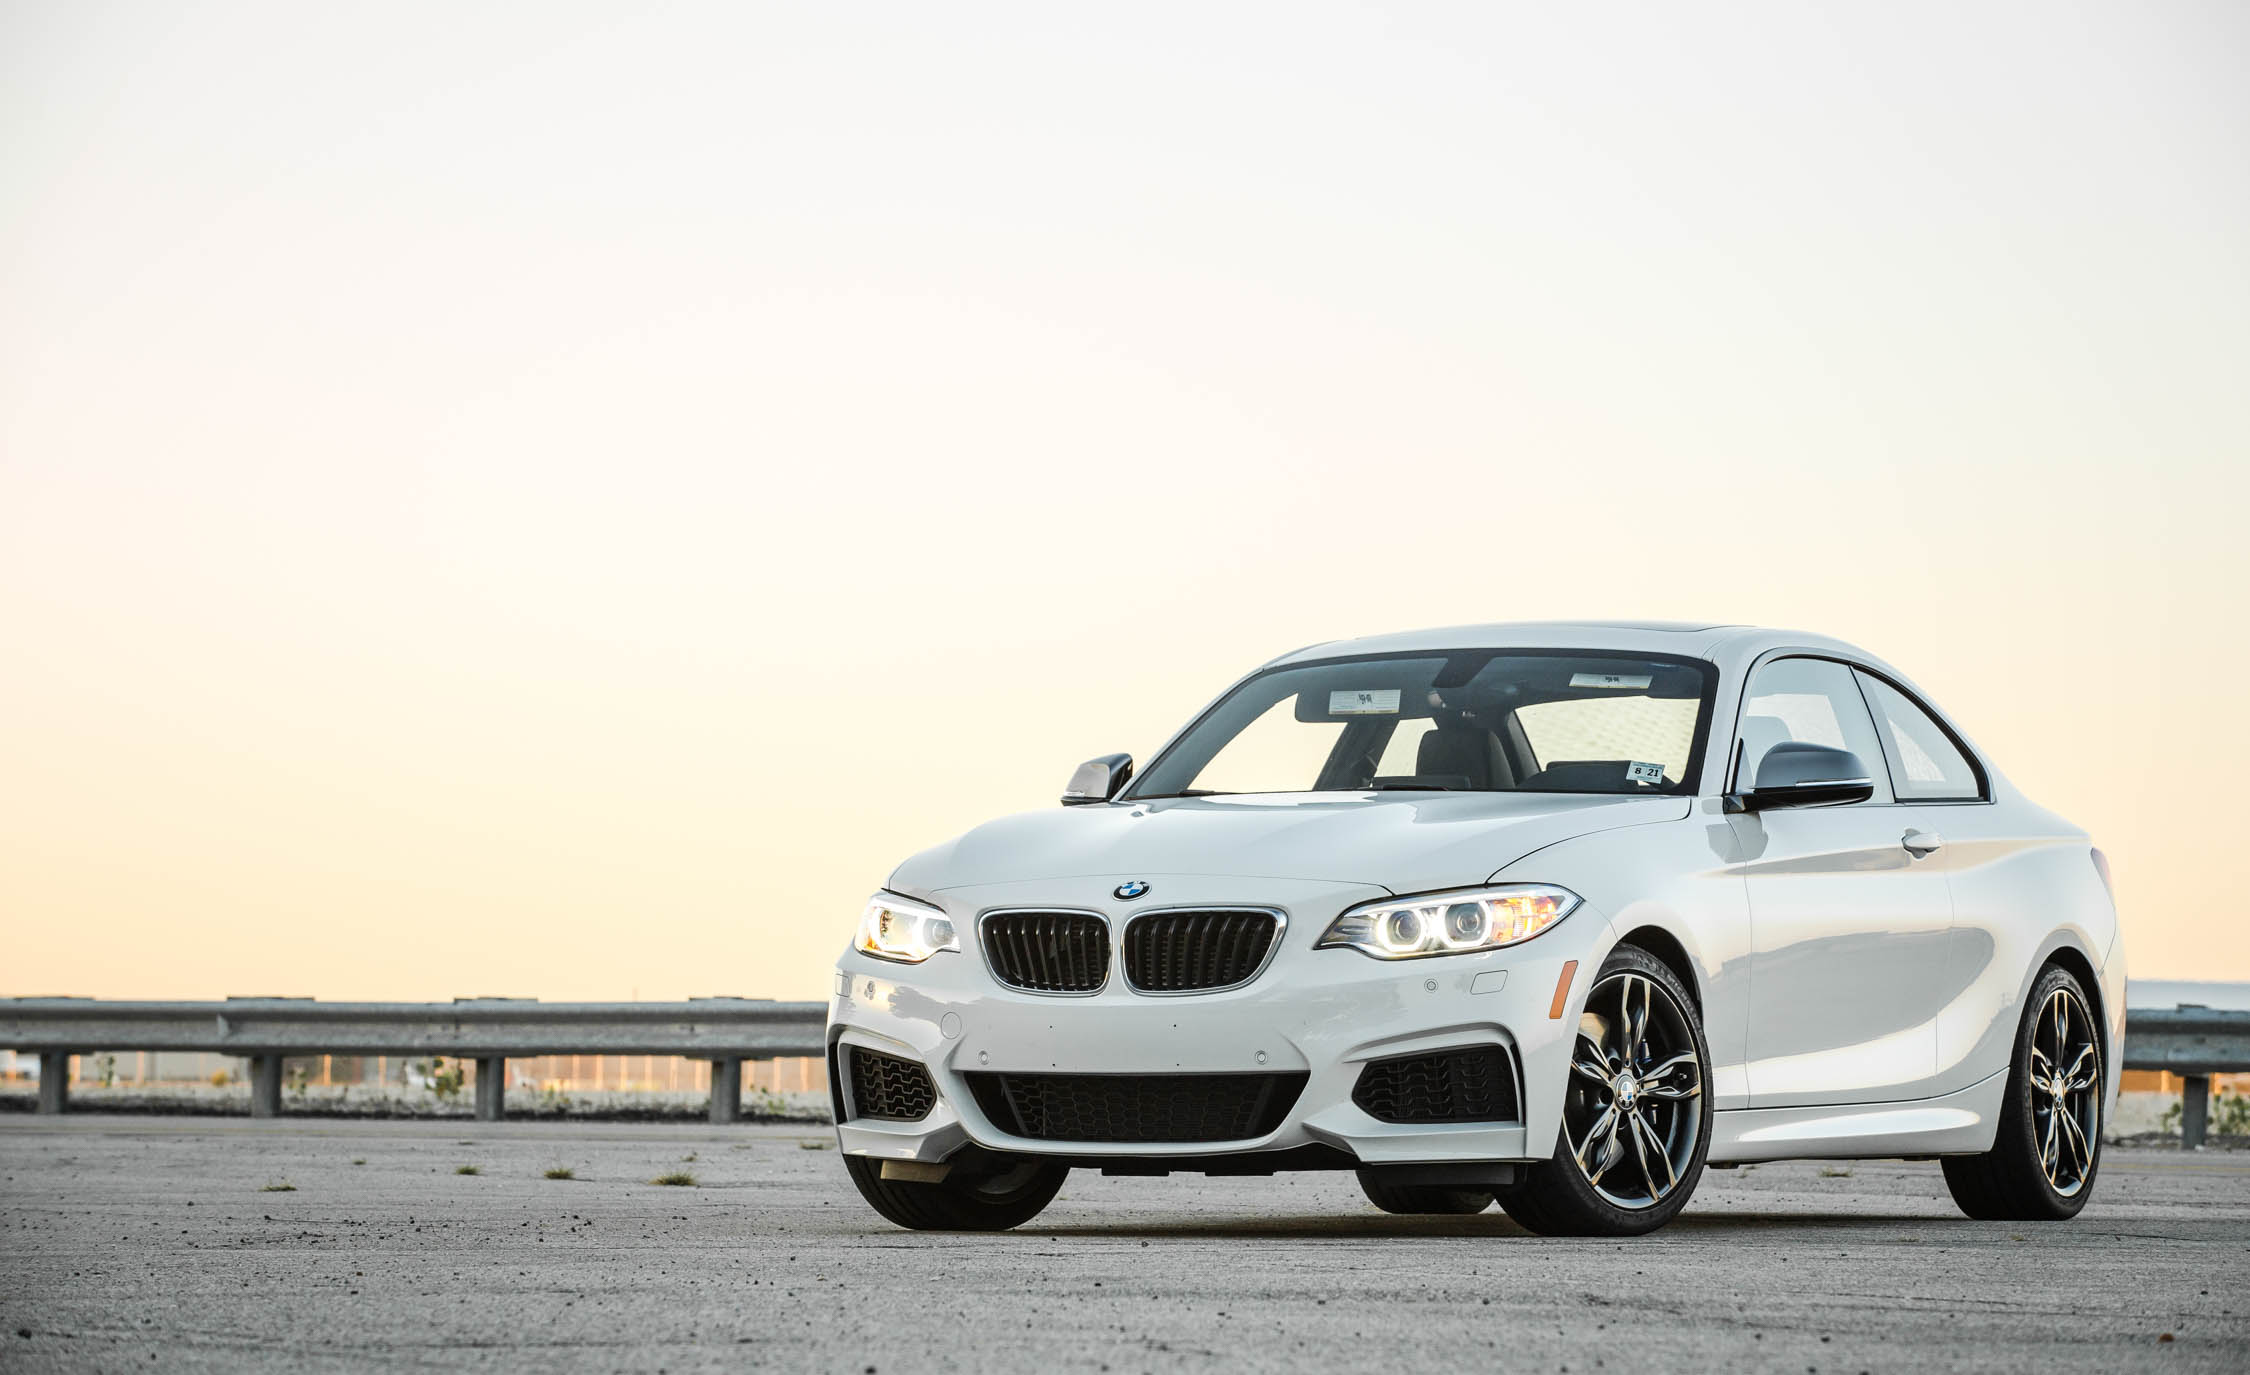 2017 BMW M240i Coupe Automatic Exterior Front And Side (View 36 of 36)